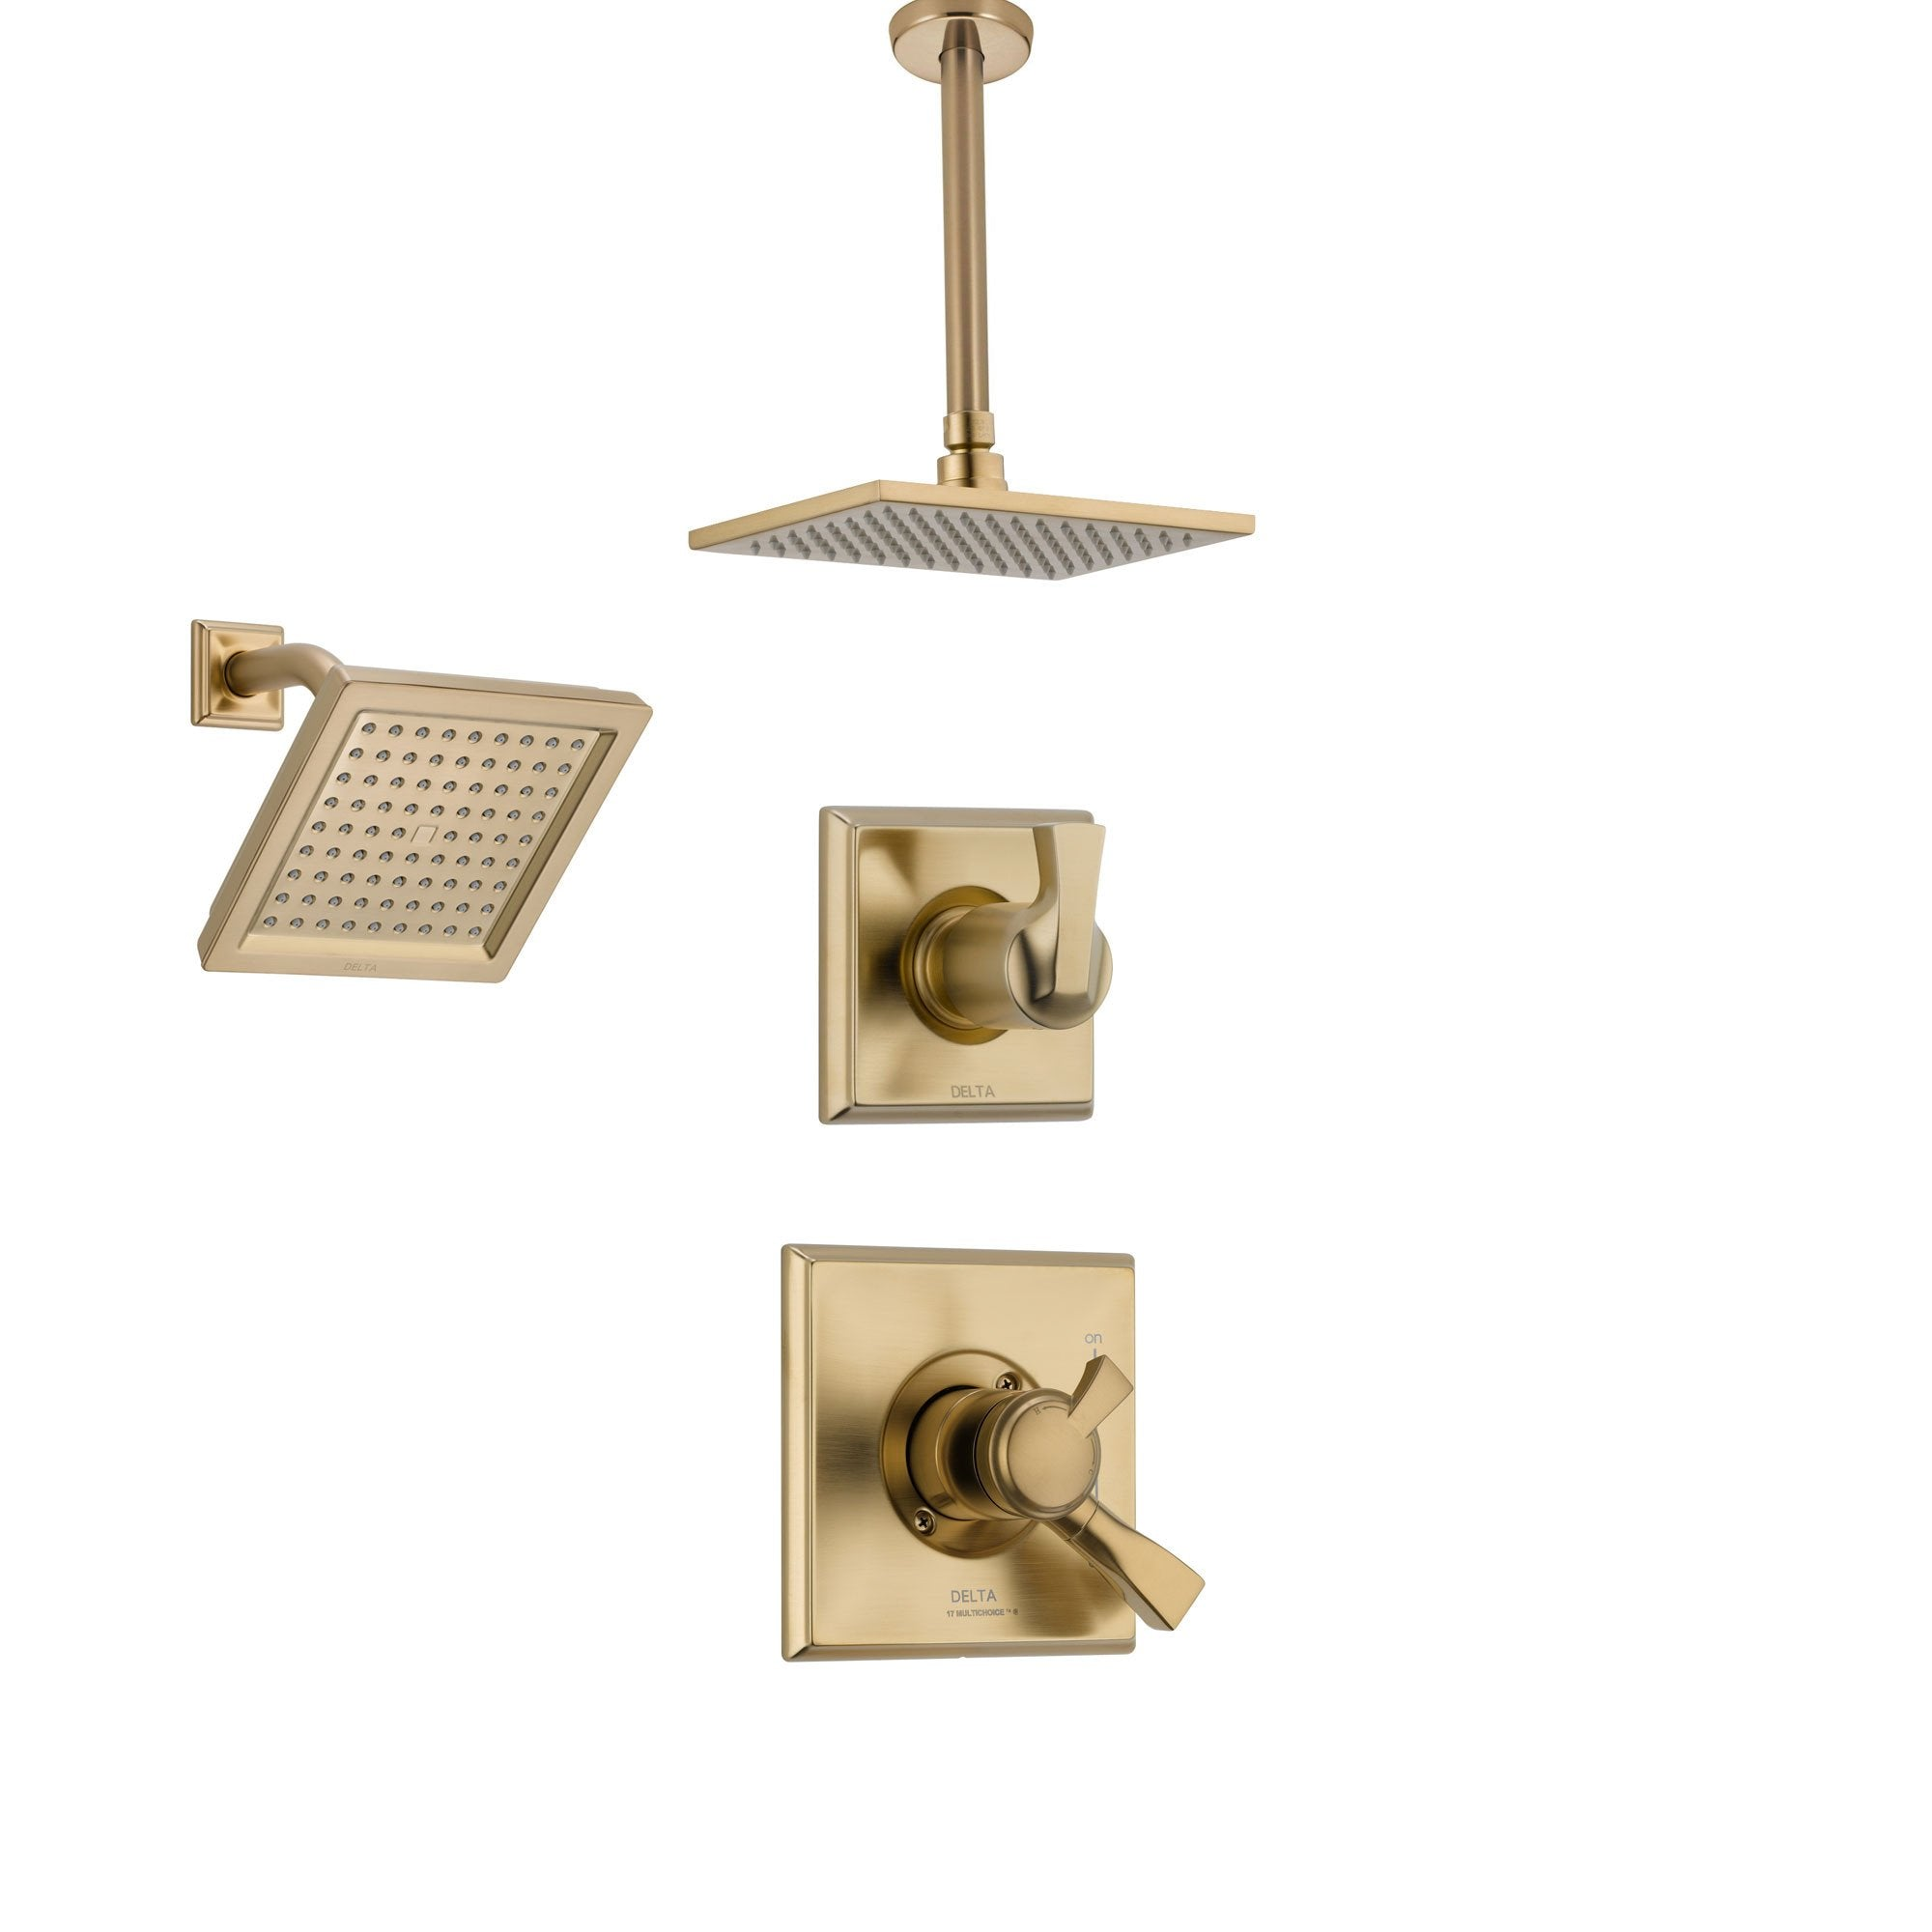 Delta Dryden Champagne Bronze Shower System with Dual Control Shower Handle, 3-setting Diverter, Large Modern Square Shower Head, and Wall Mount Showerhead SS175184CZ